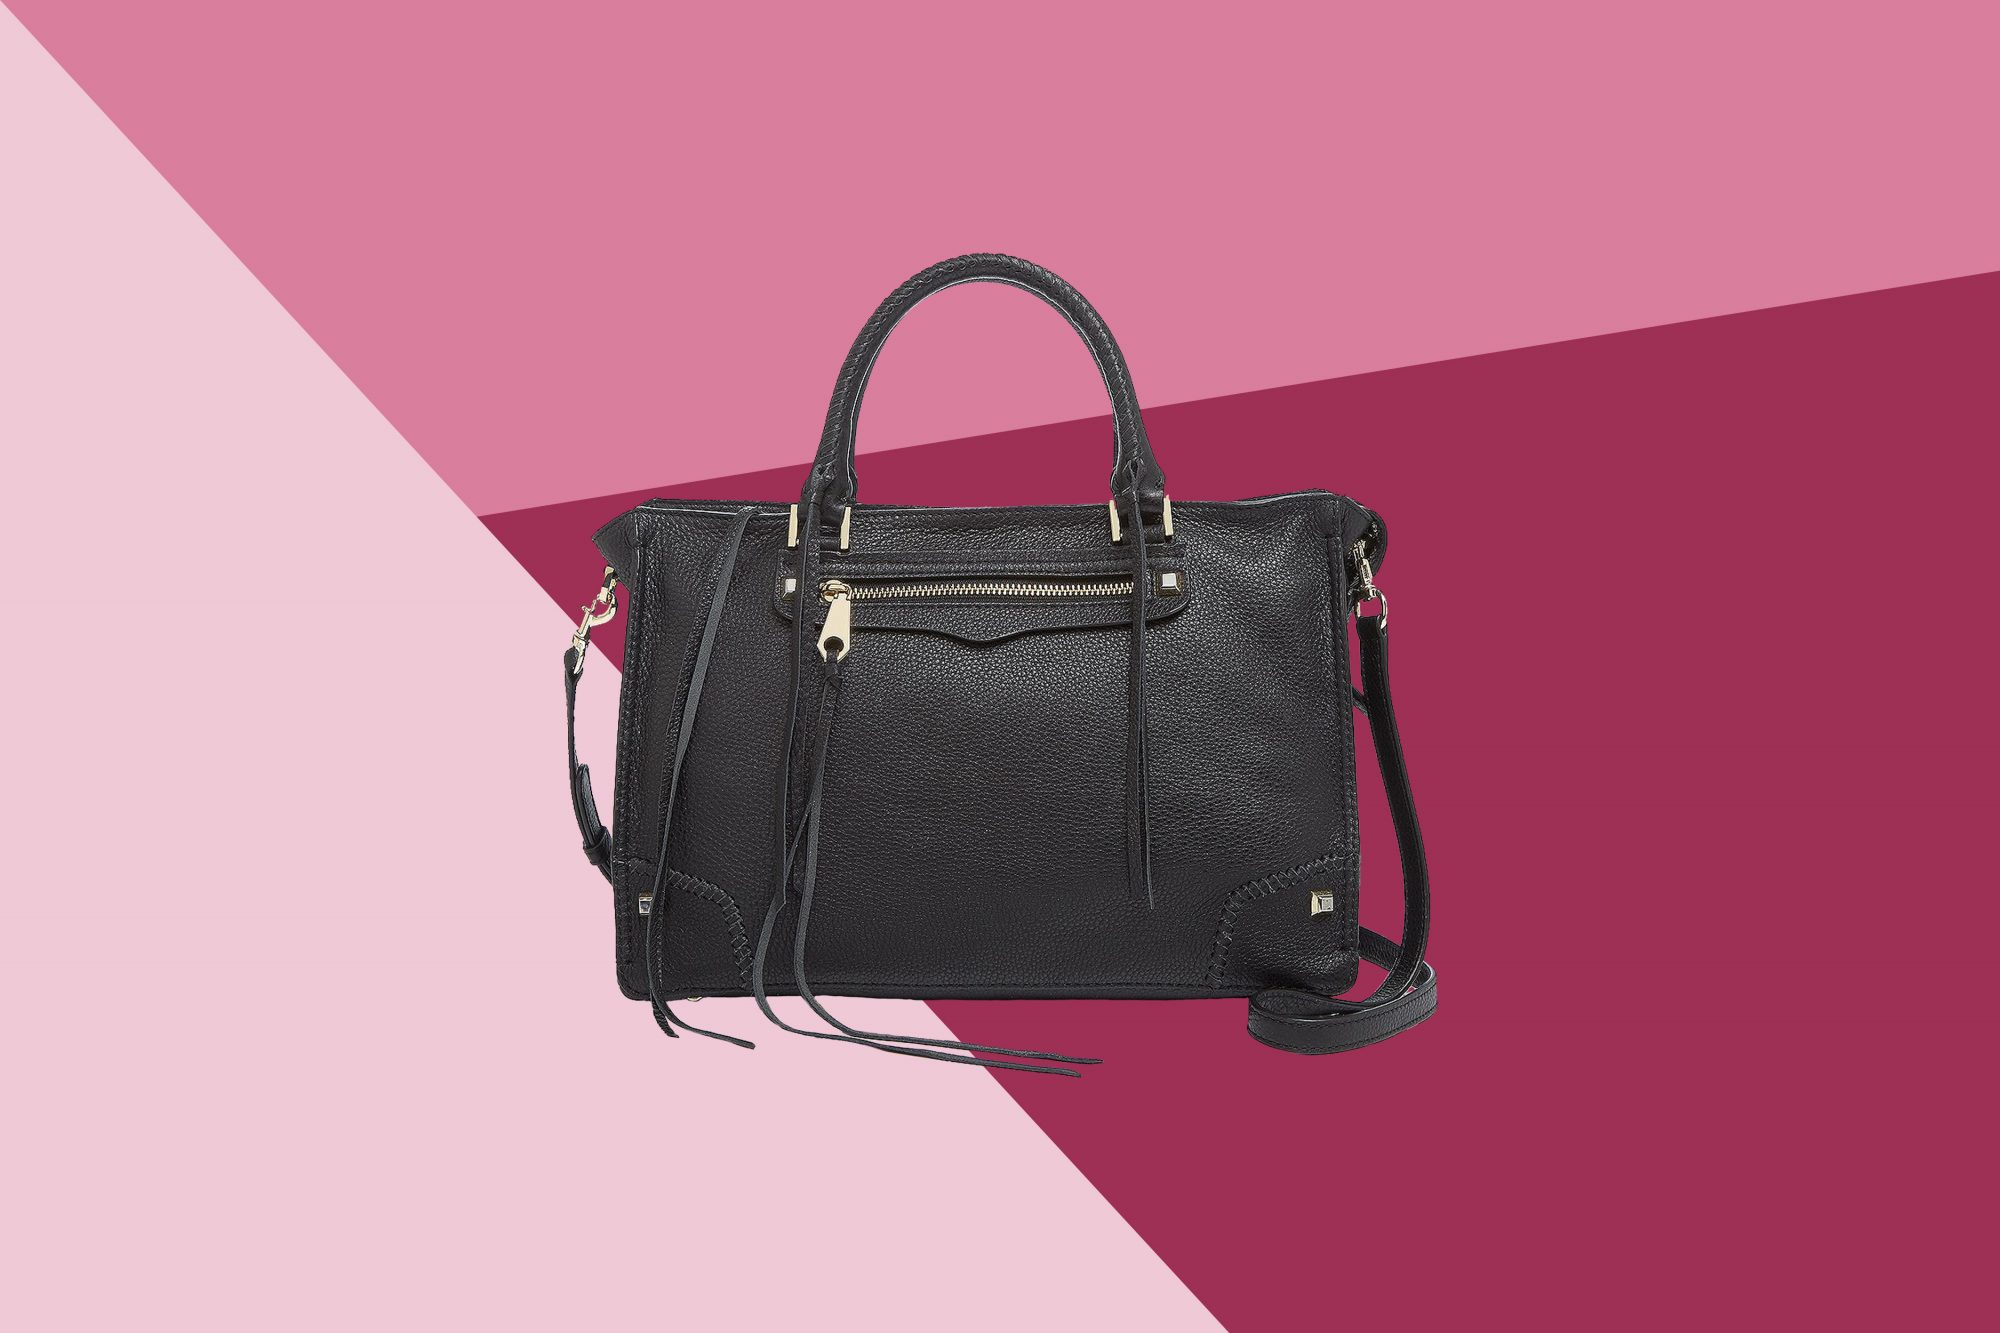 5ecf92a1be5f Shop the Rebecca Minkoff Regan Leather Satchel from Bloomingdale s ...